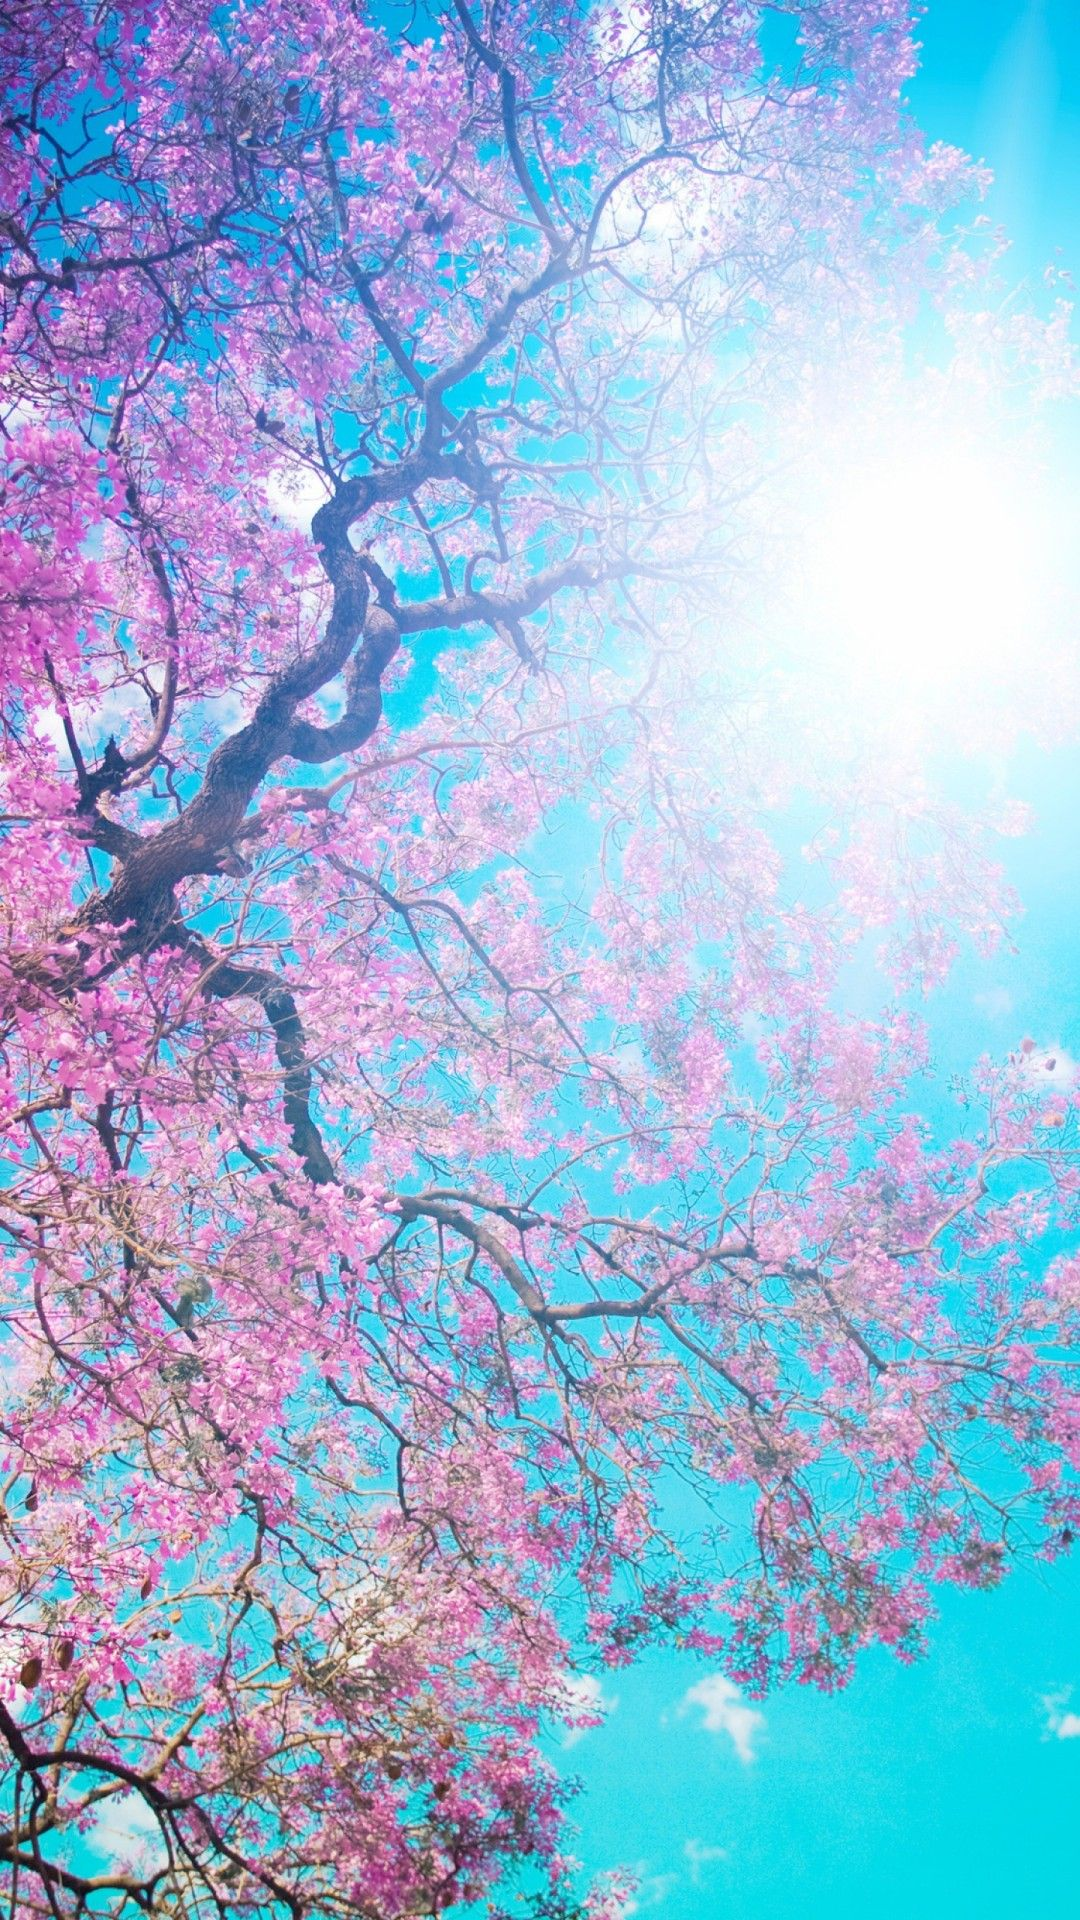 Pink Flowers Beauty In Its Maximum Expression Pinterest Wallpaper